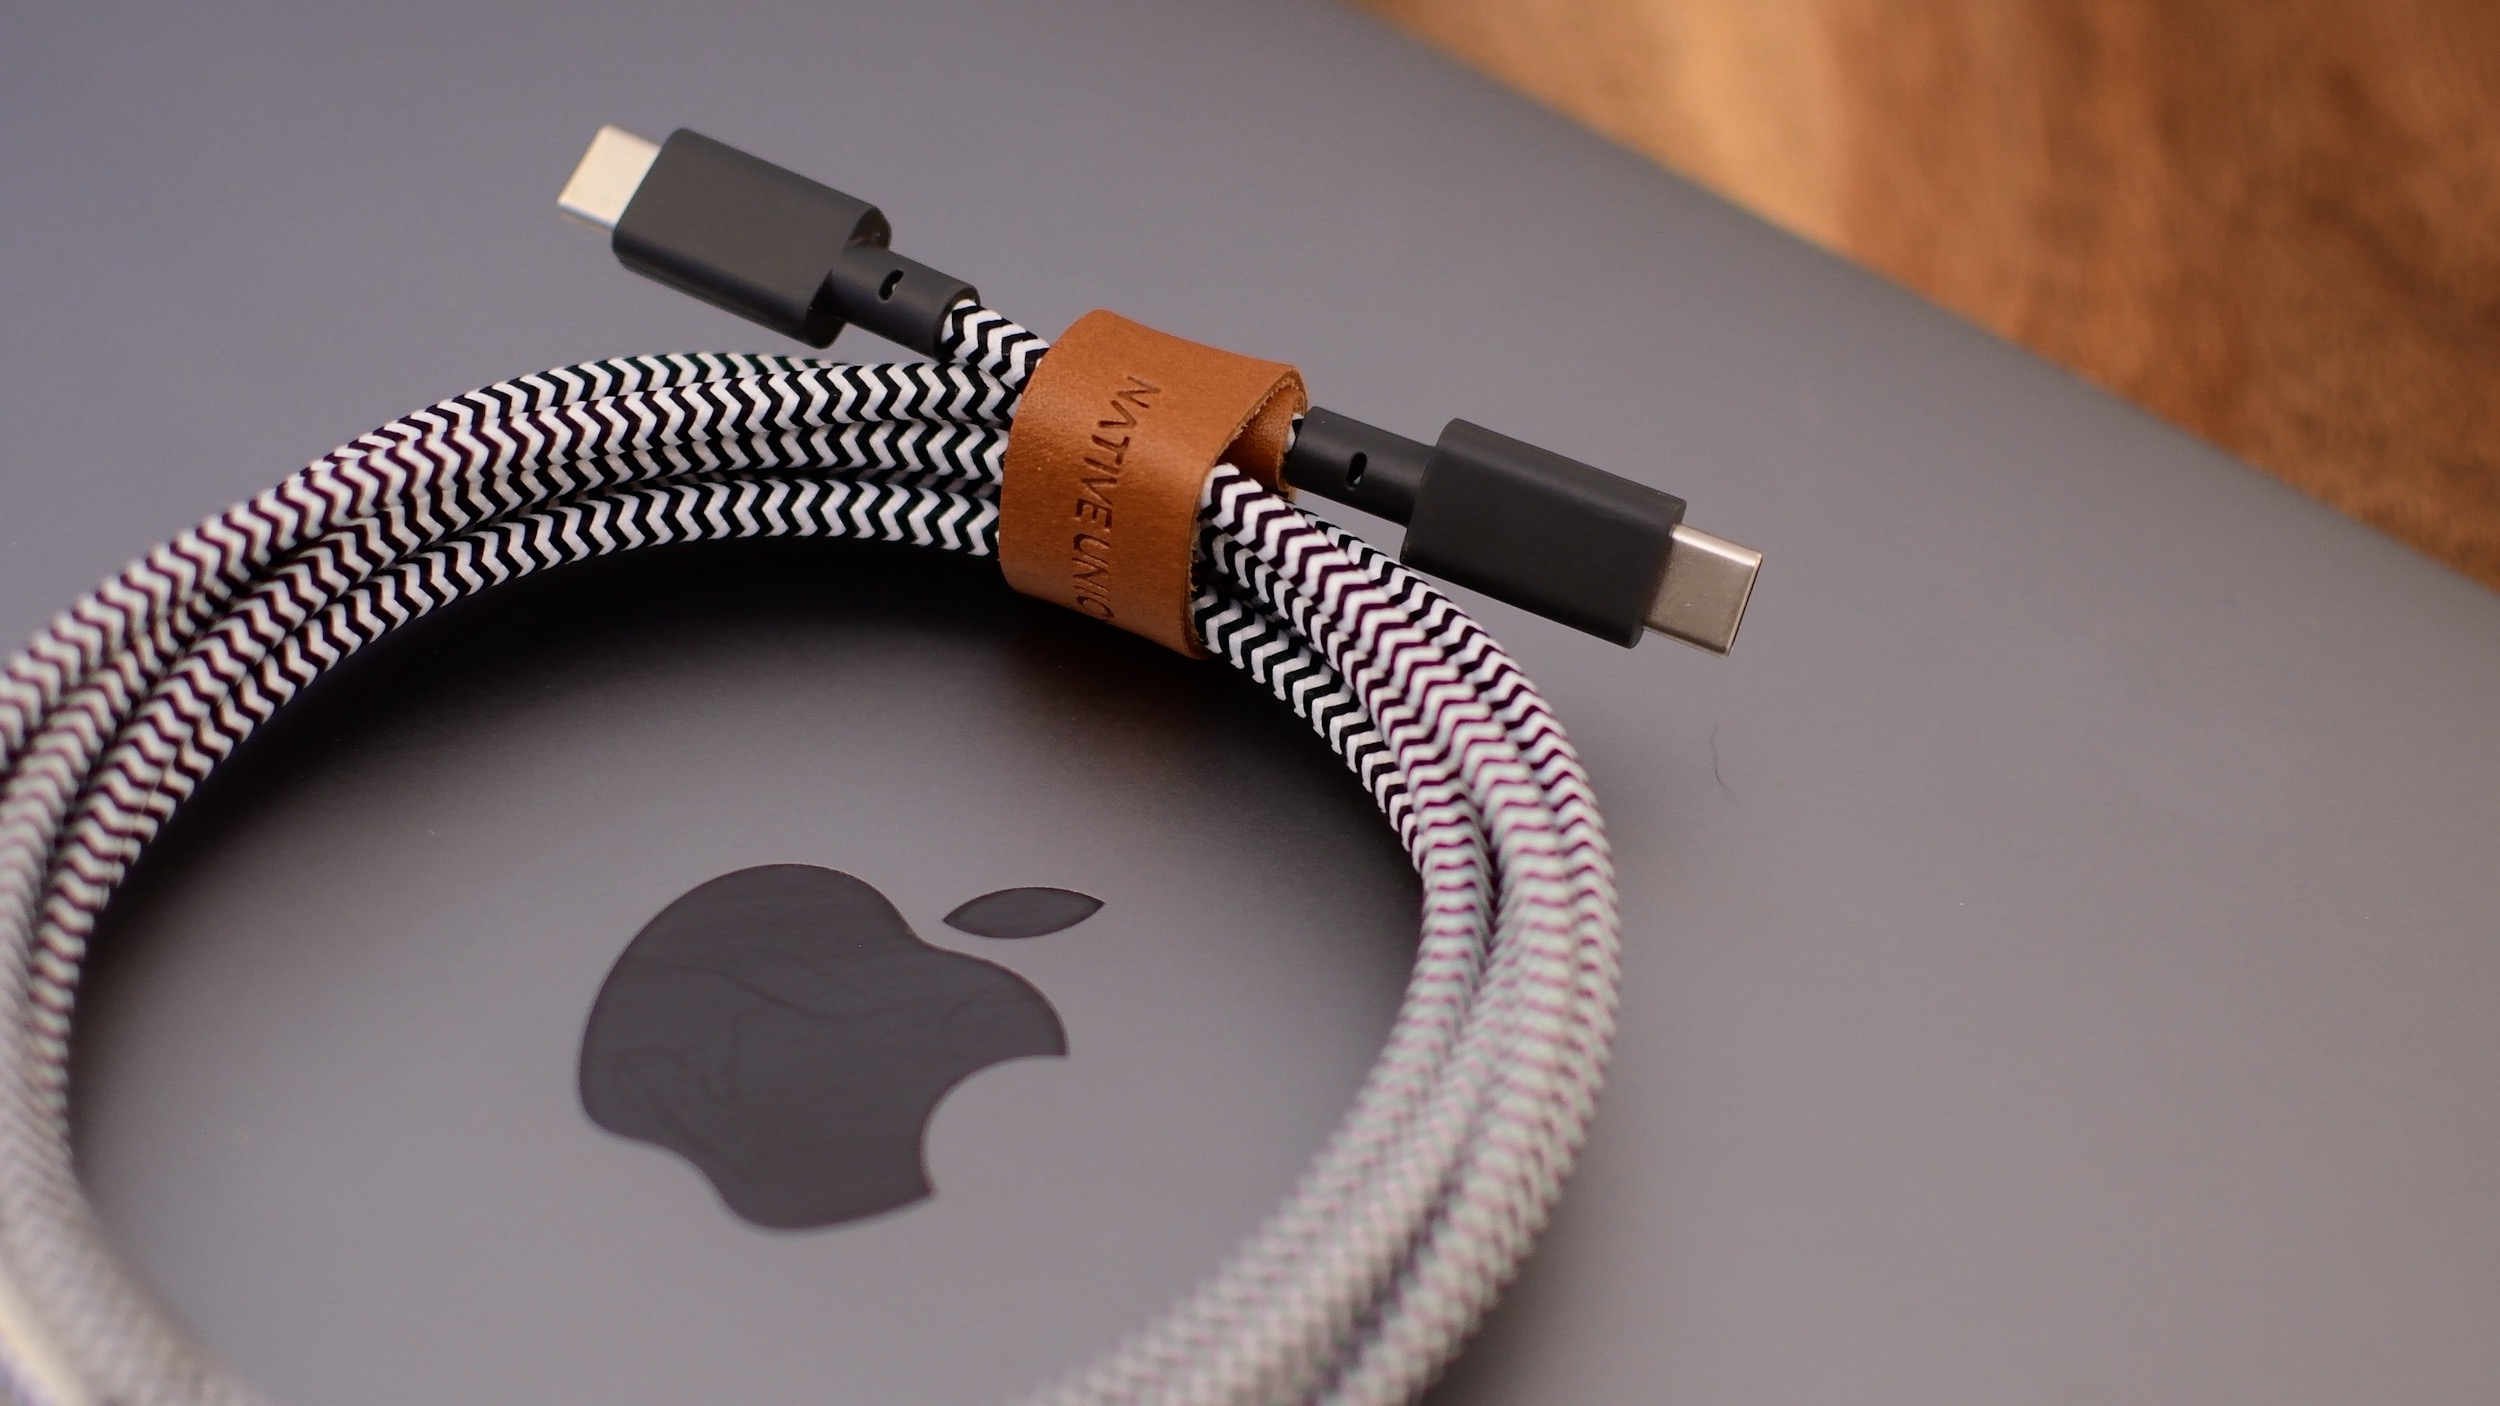 c3ad7e6b3b Native Union adds USB-C to their lineup of exceptional cables